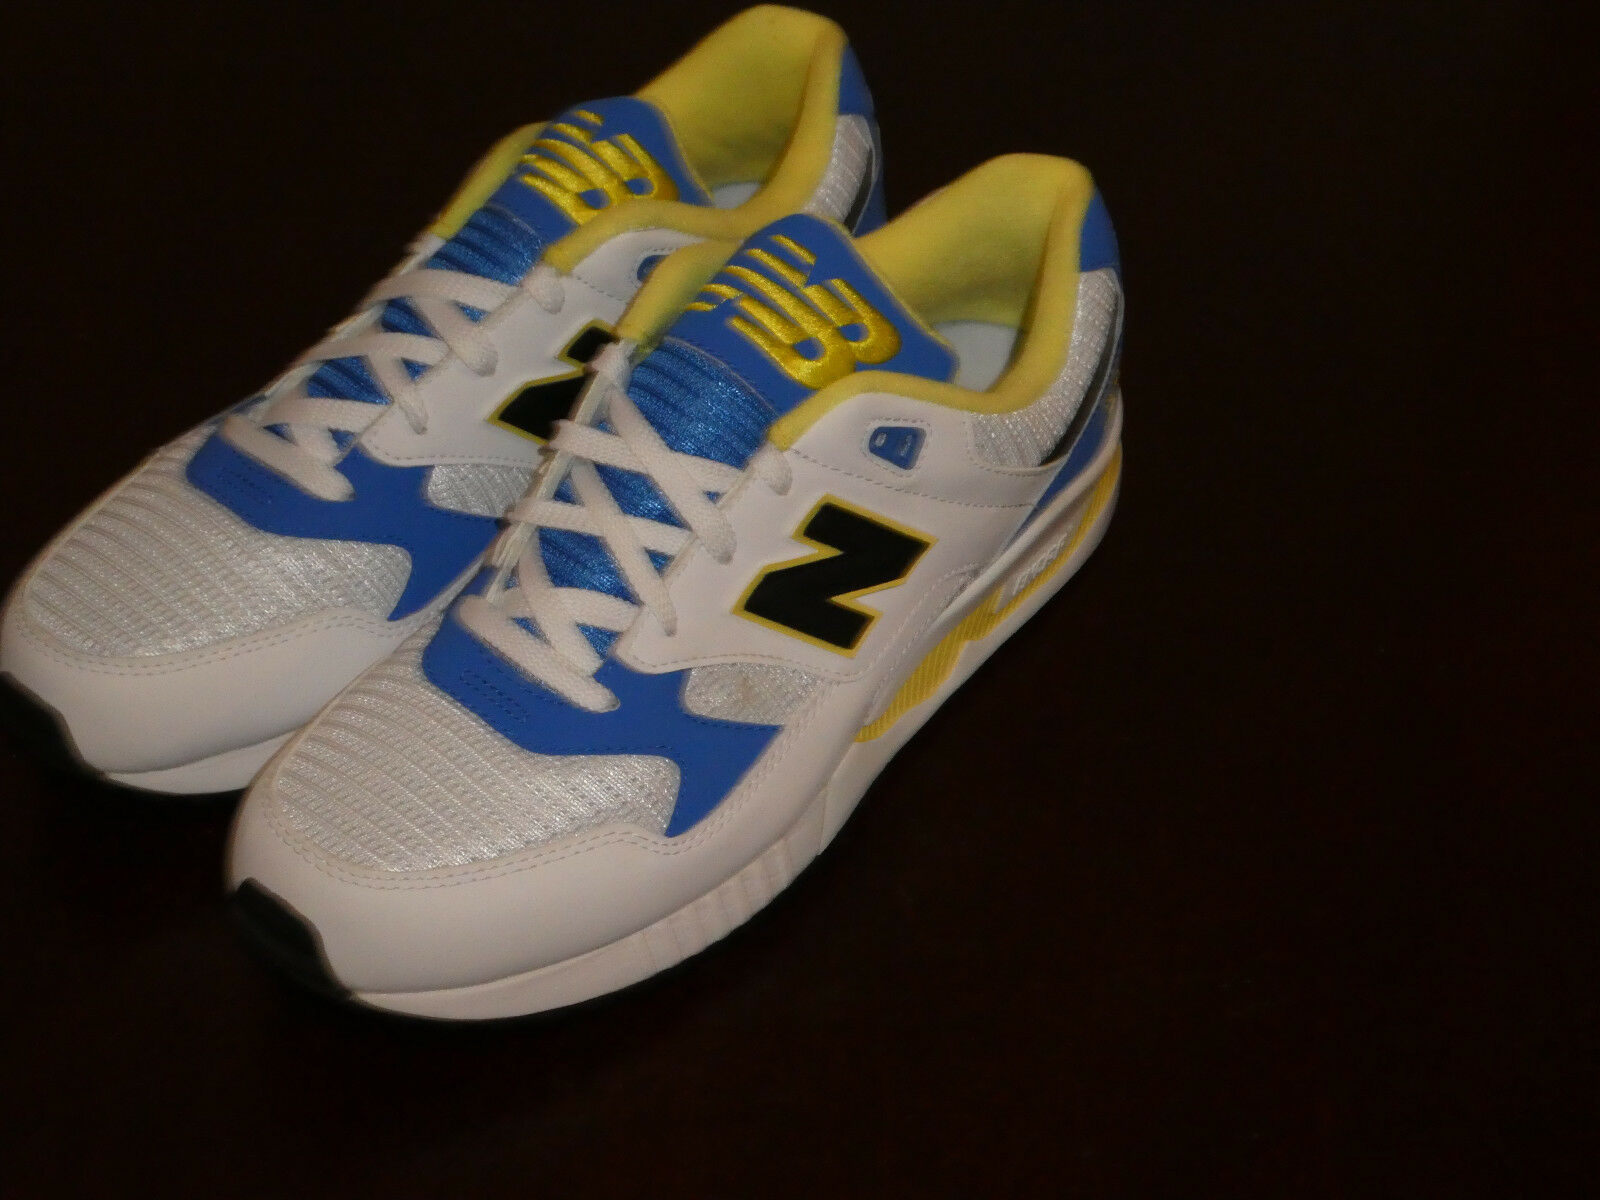 New Balance M530WBY Mens shoes Size 9.5 Sneakers 530